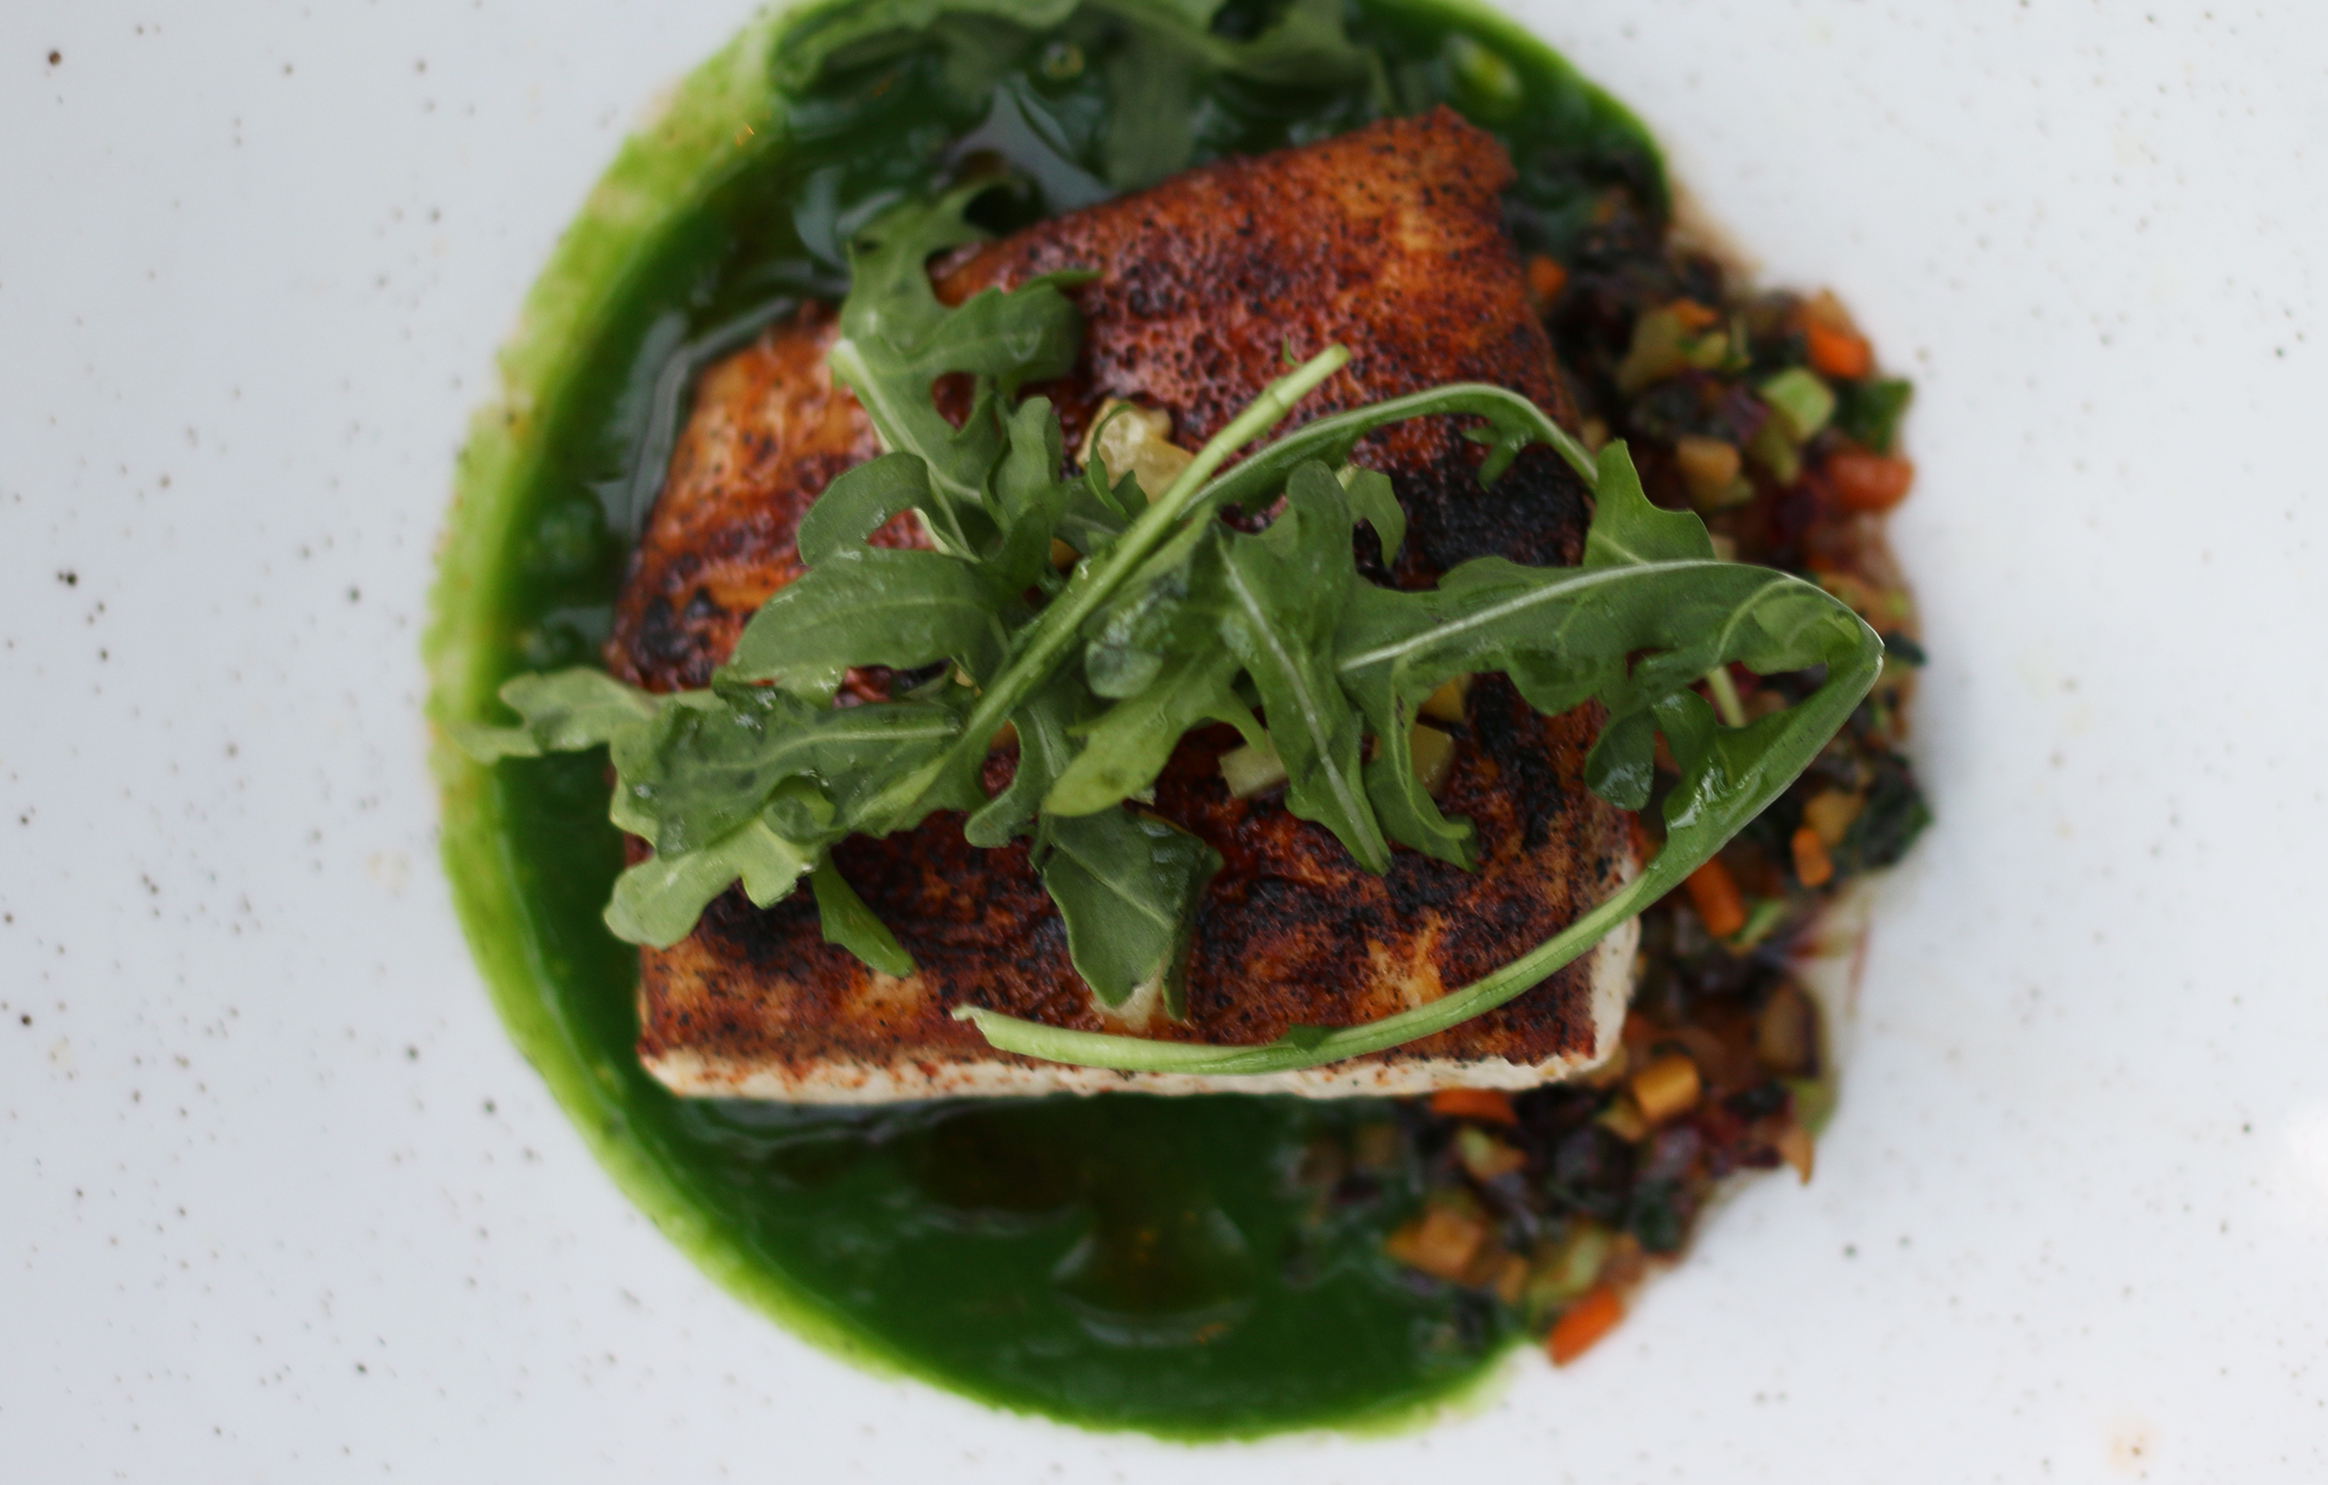 Fish of the Day : Ash crust, spinach chilpete, swiss chard stem, guisado, russian kale, preserved lemon